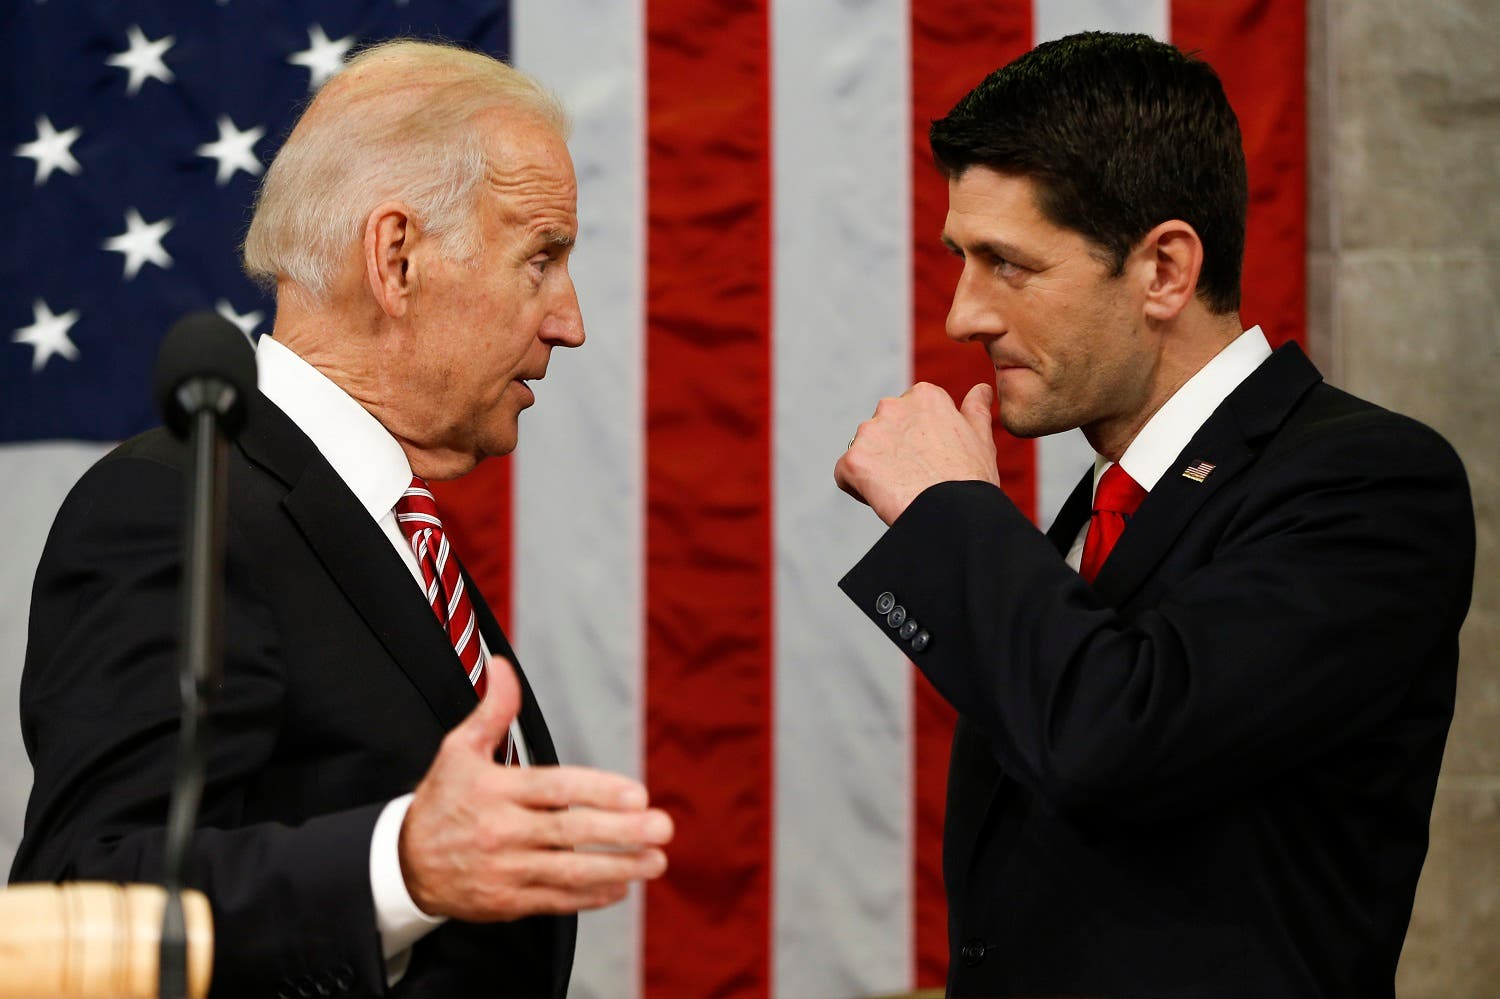 President Barack Obama shakes hands with House Speaker Paul Ryan of Wisconsin as Vice President Joe Biden watches before the State of the Union address to a joint session of Congress on Capitol Hill in Washington. (AP)